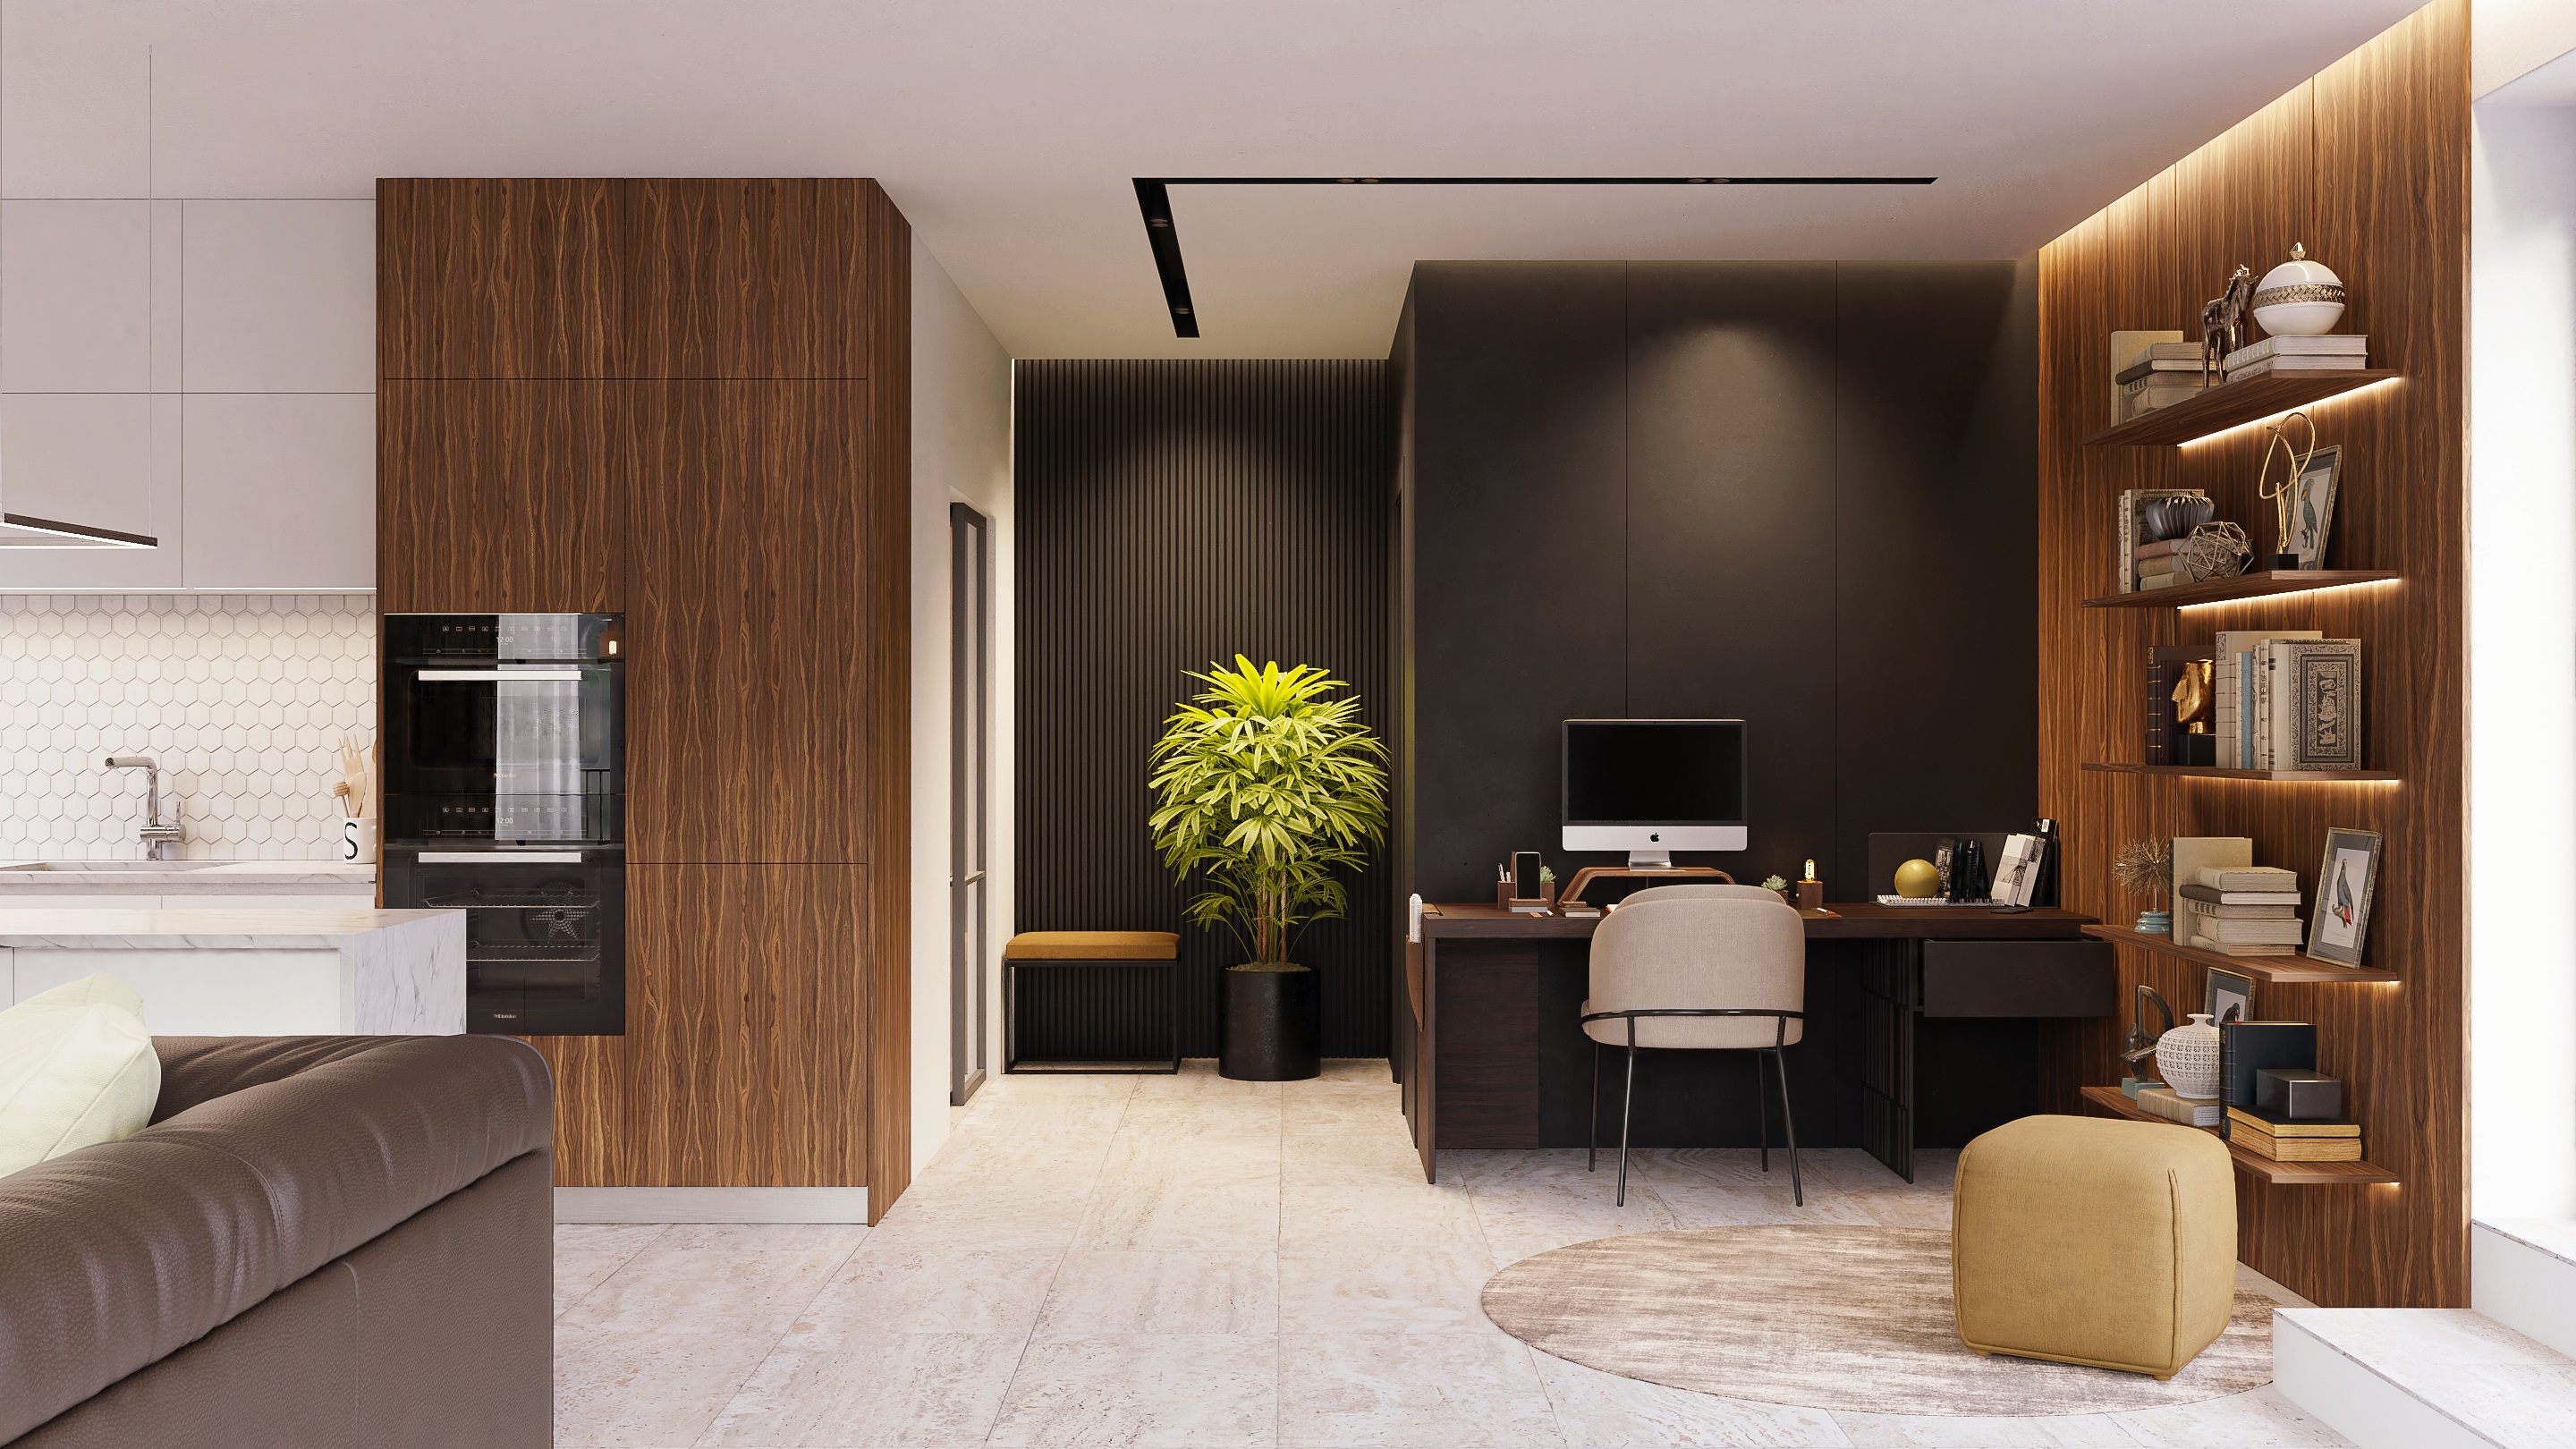 Open Space Modern Small Apartment Kitchen And Living Room Finished Projects Blender Artists Community